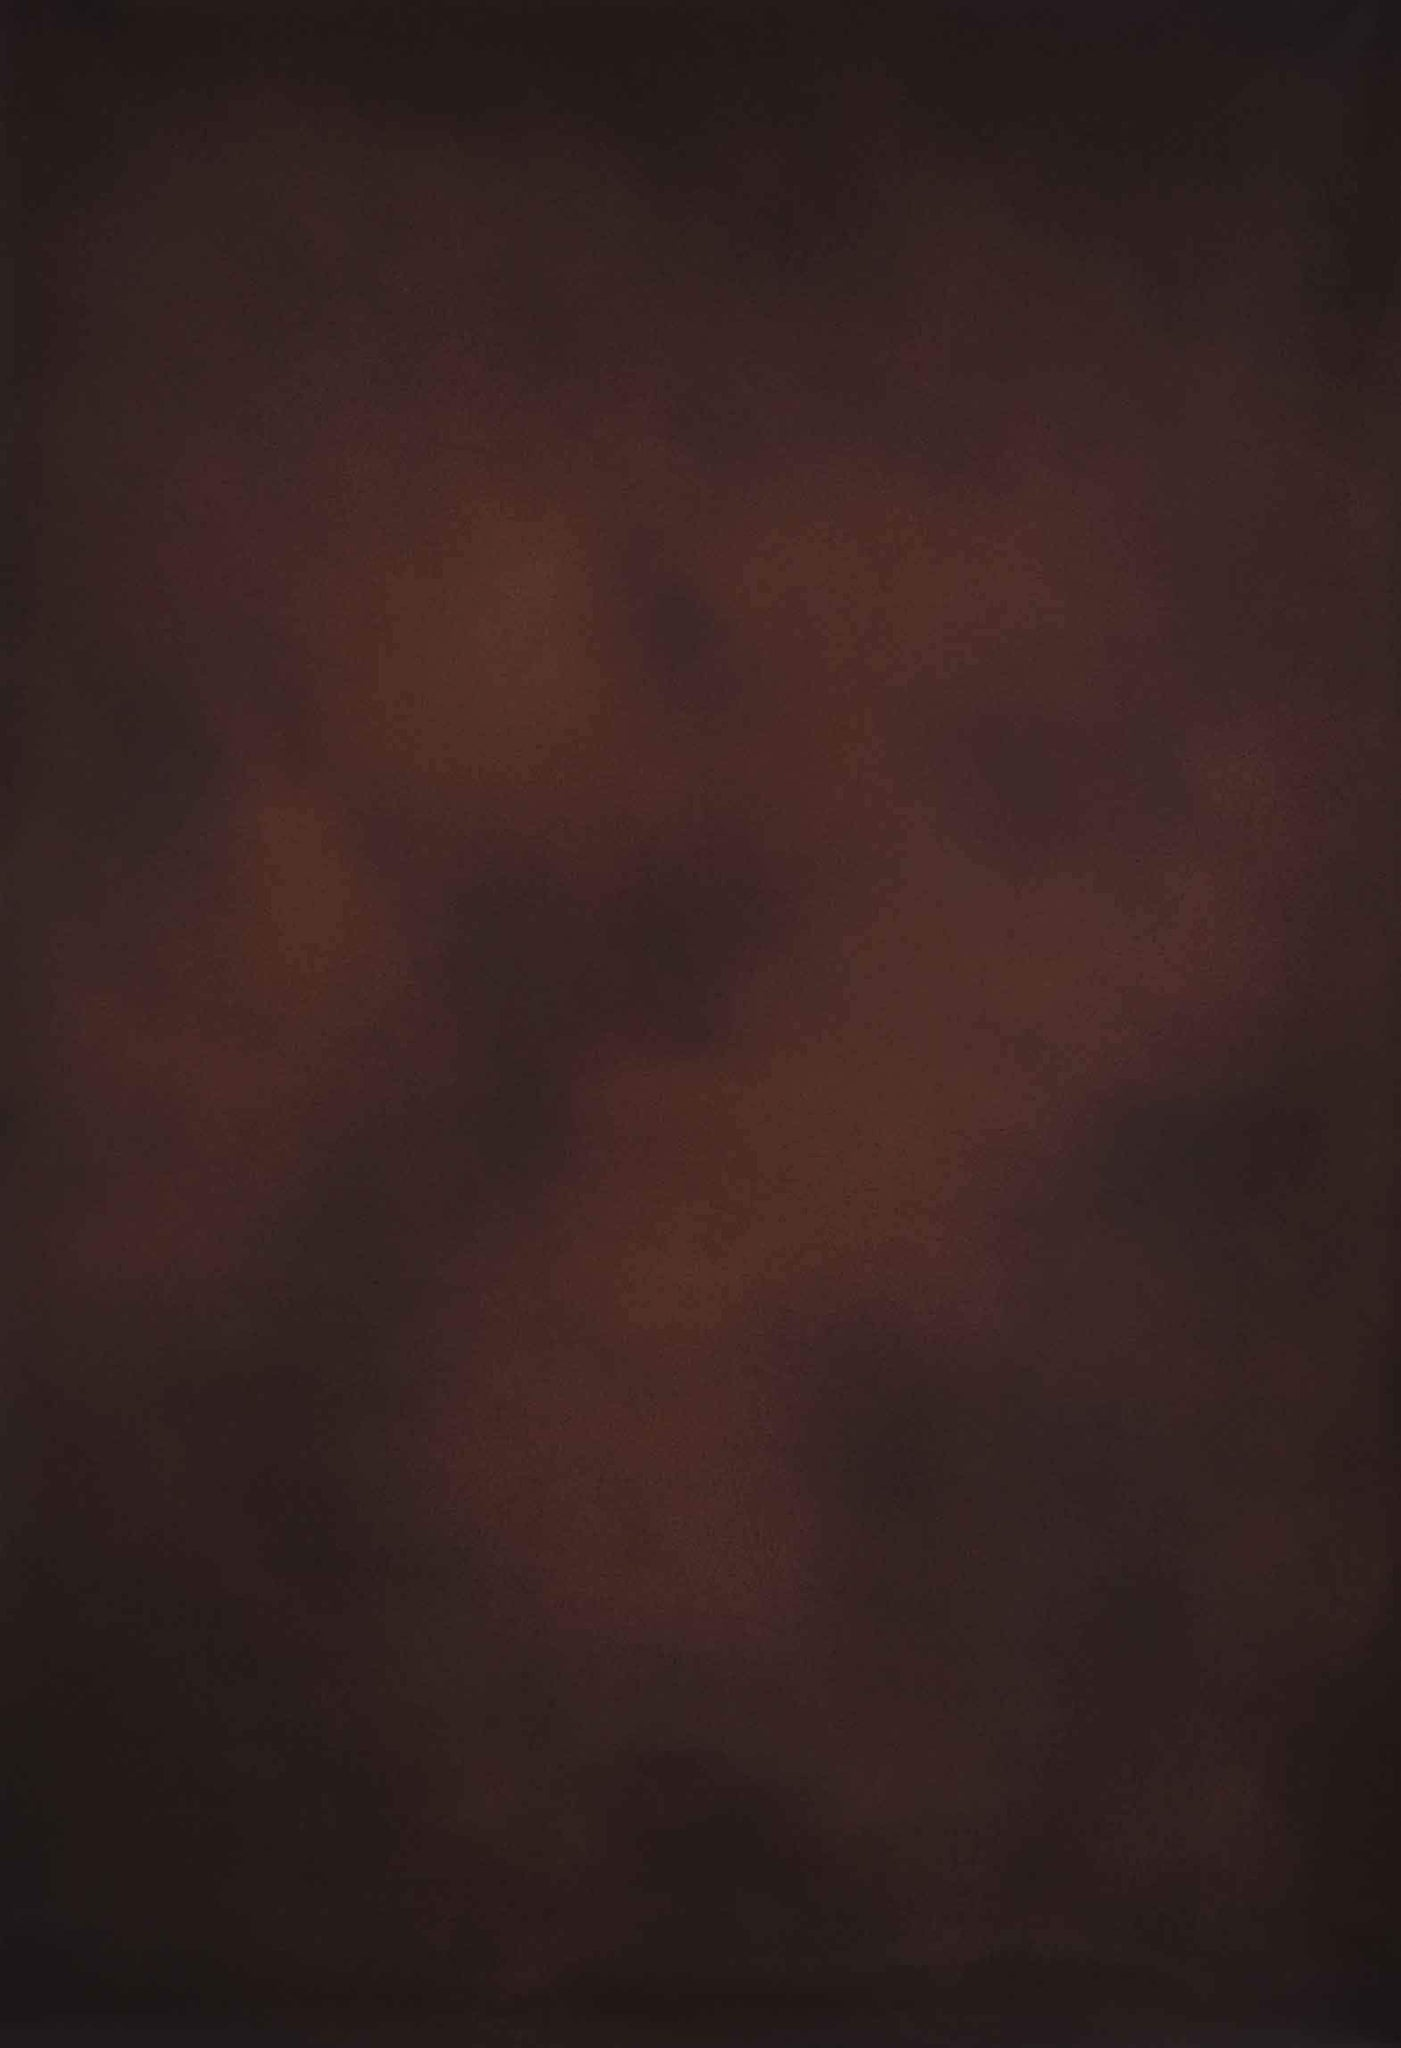 Load image into Gallery viewer, Katebackdrop£ºKate Soft Brown Abstract Texture Spray Hand Painted Backdrop